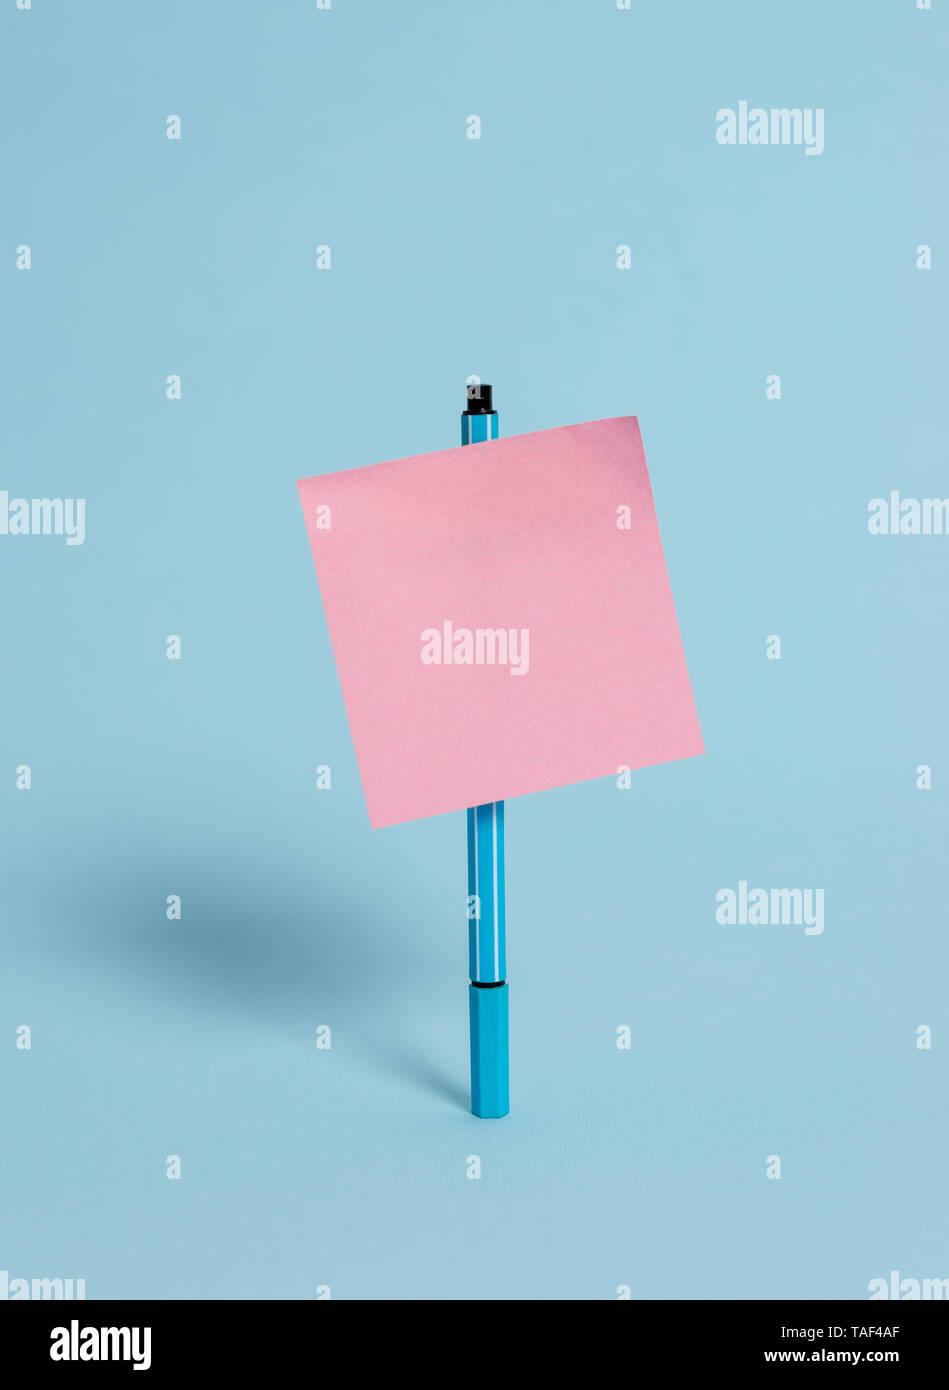 Ballpoint blank colored sticky note peaceful cool pastel fashion background - Stock Image